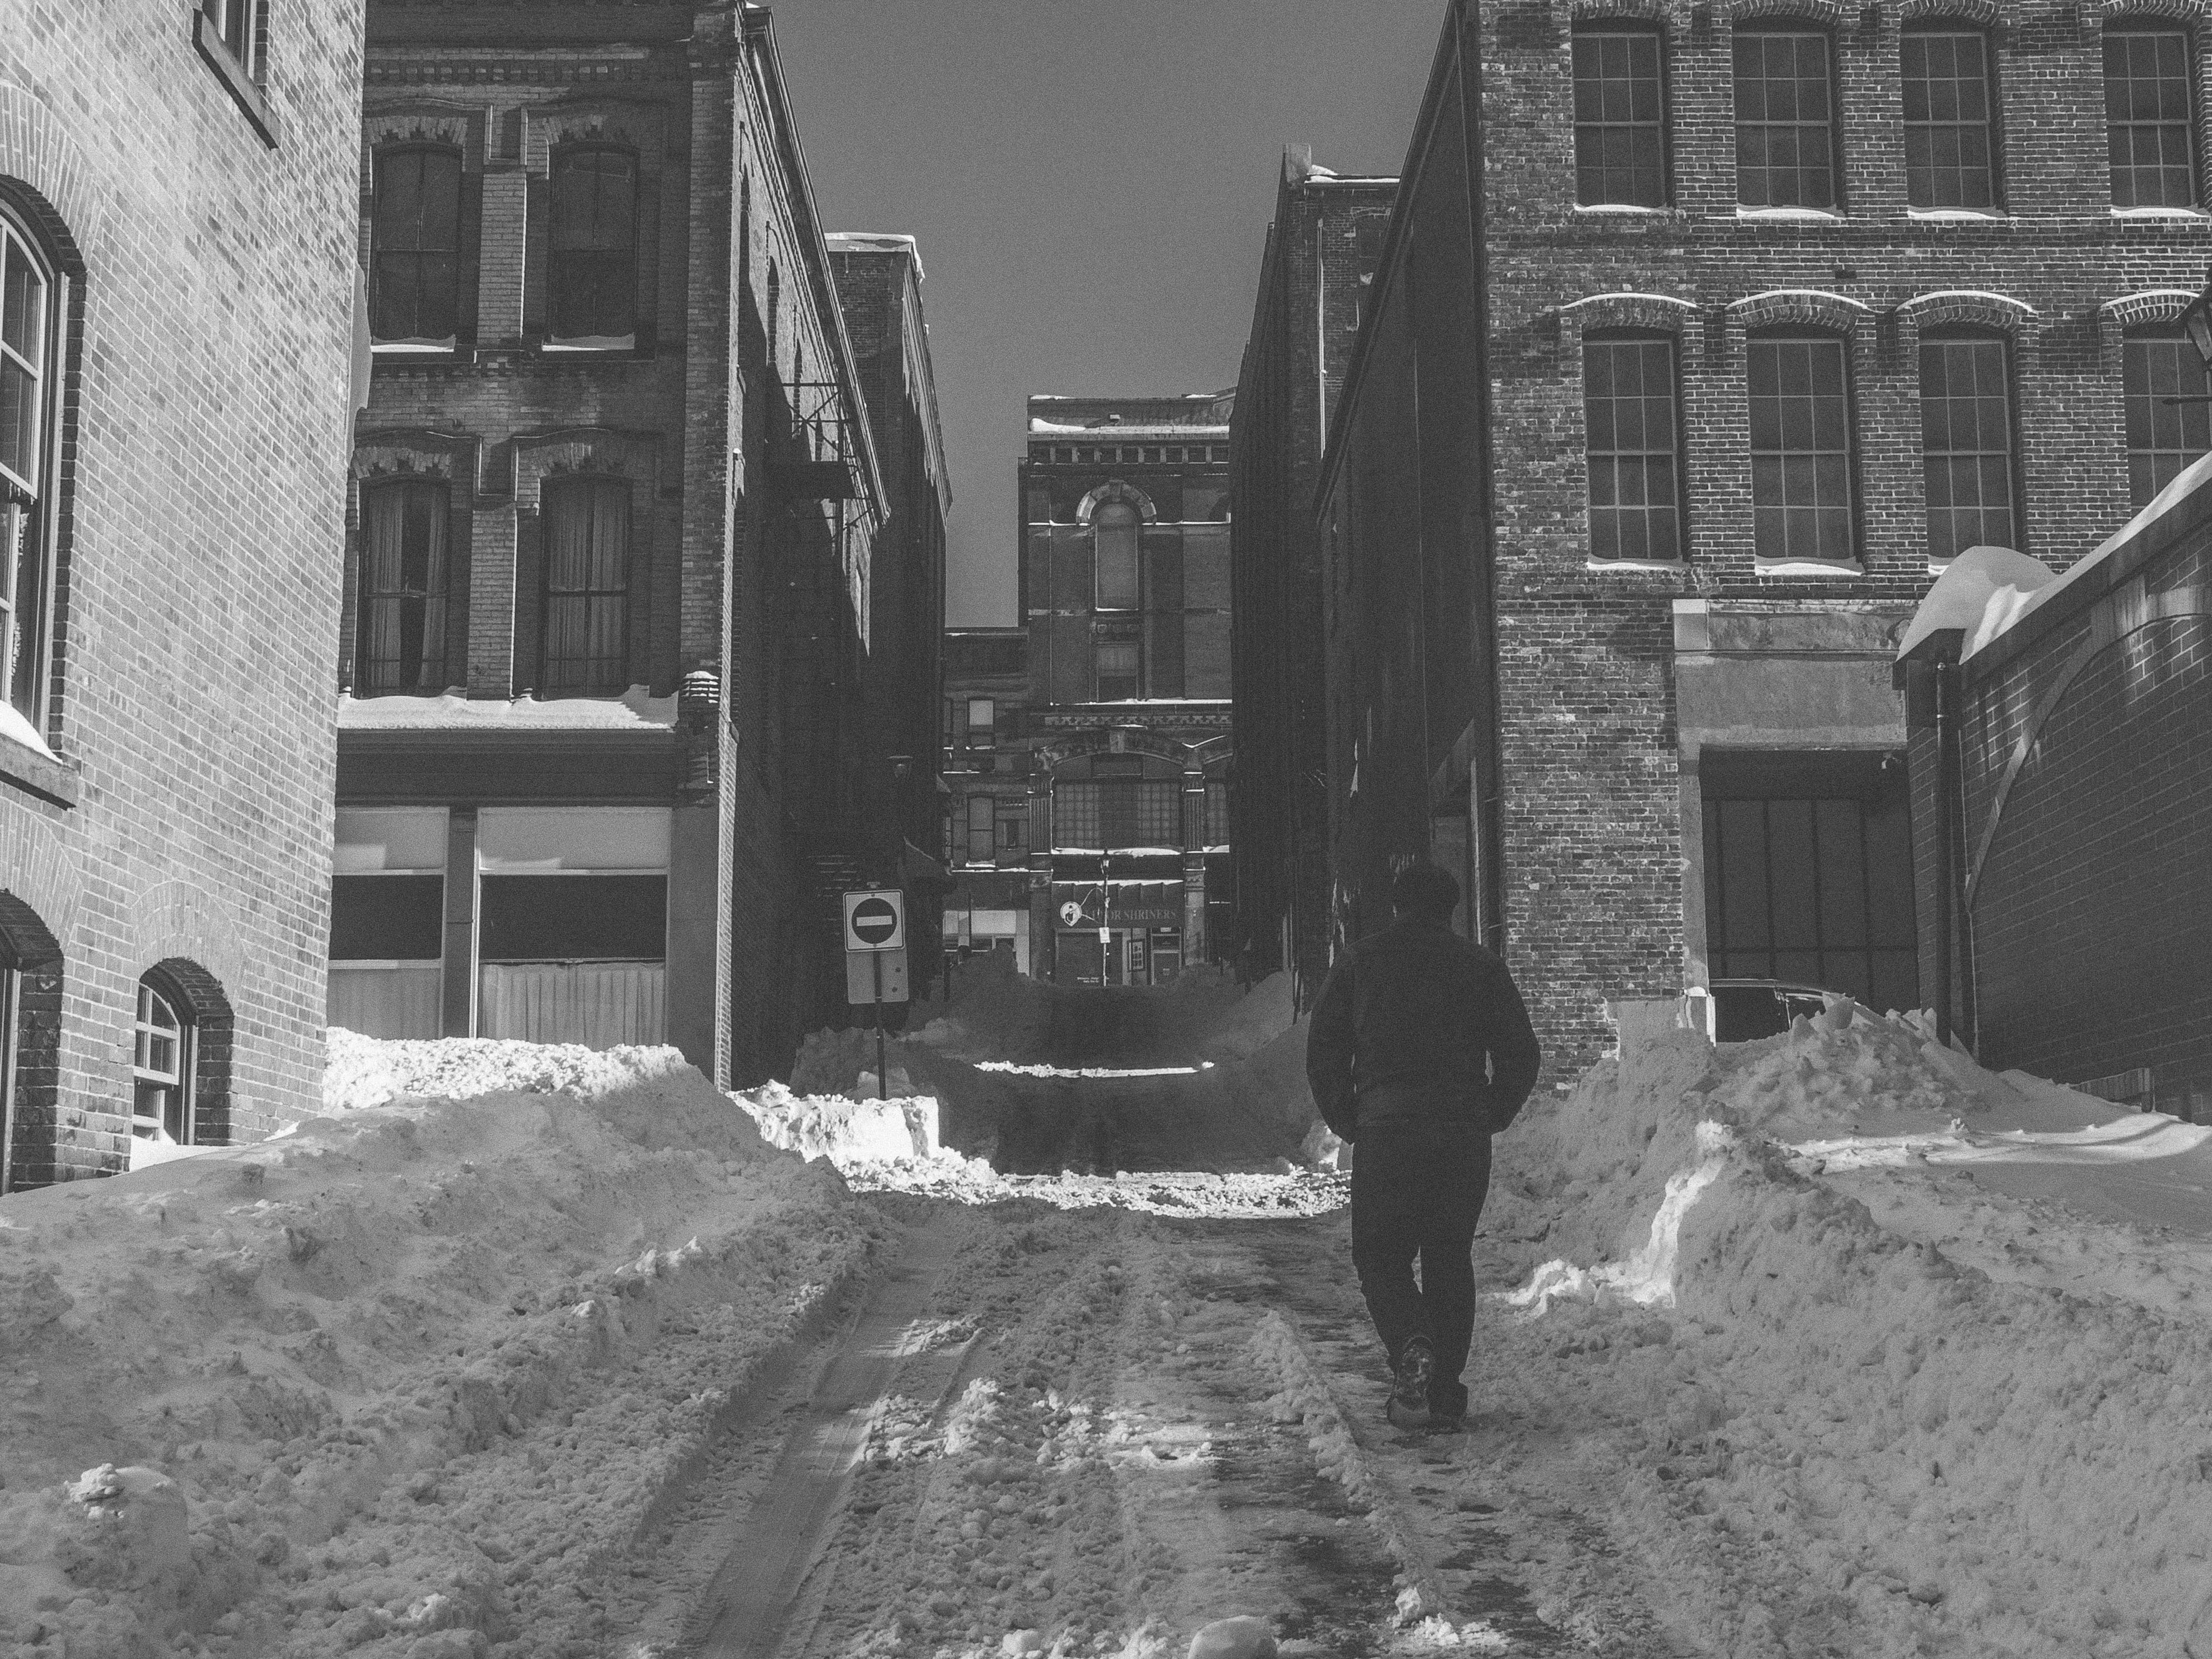 A photograph depicting Looking up Snowy Grannan Lane